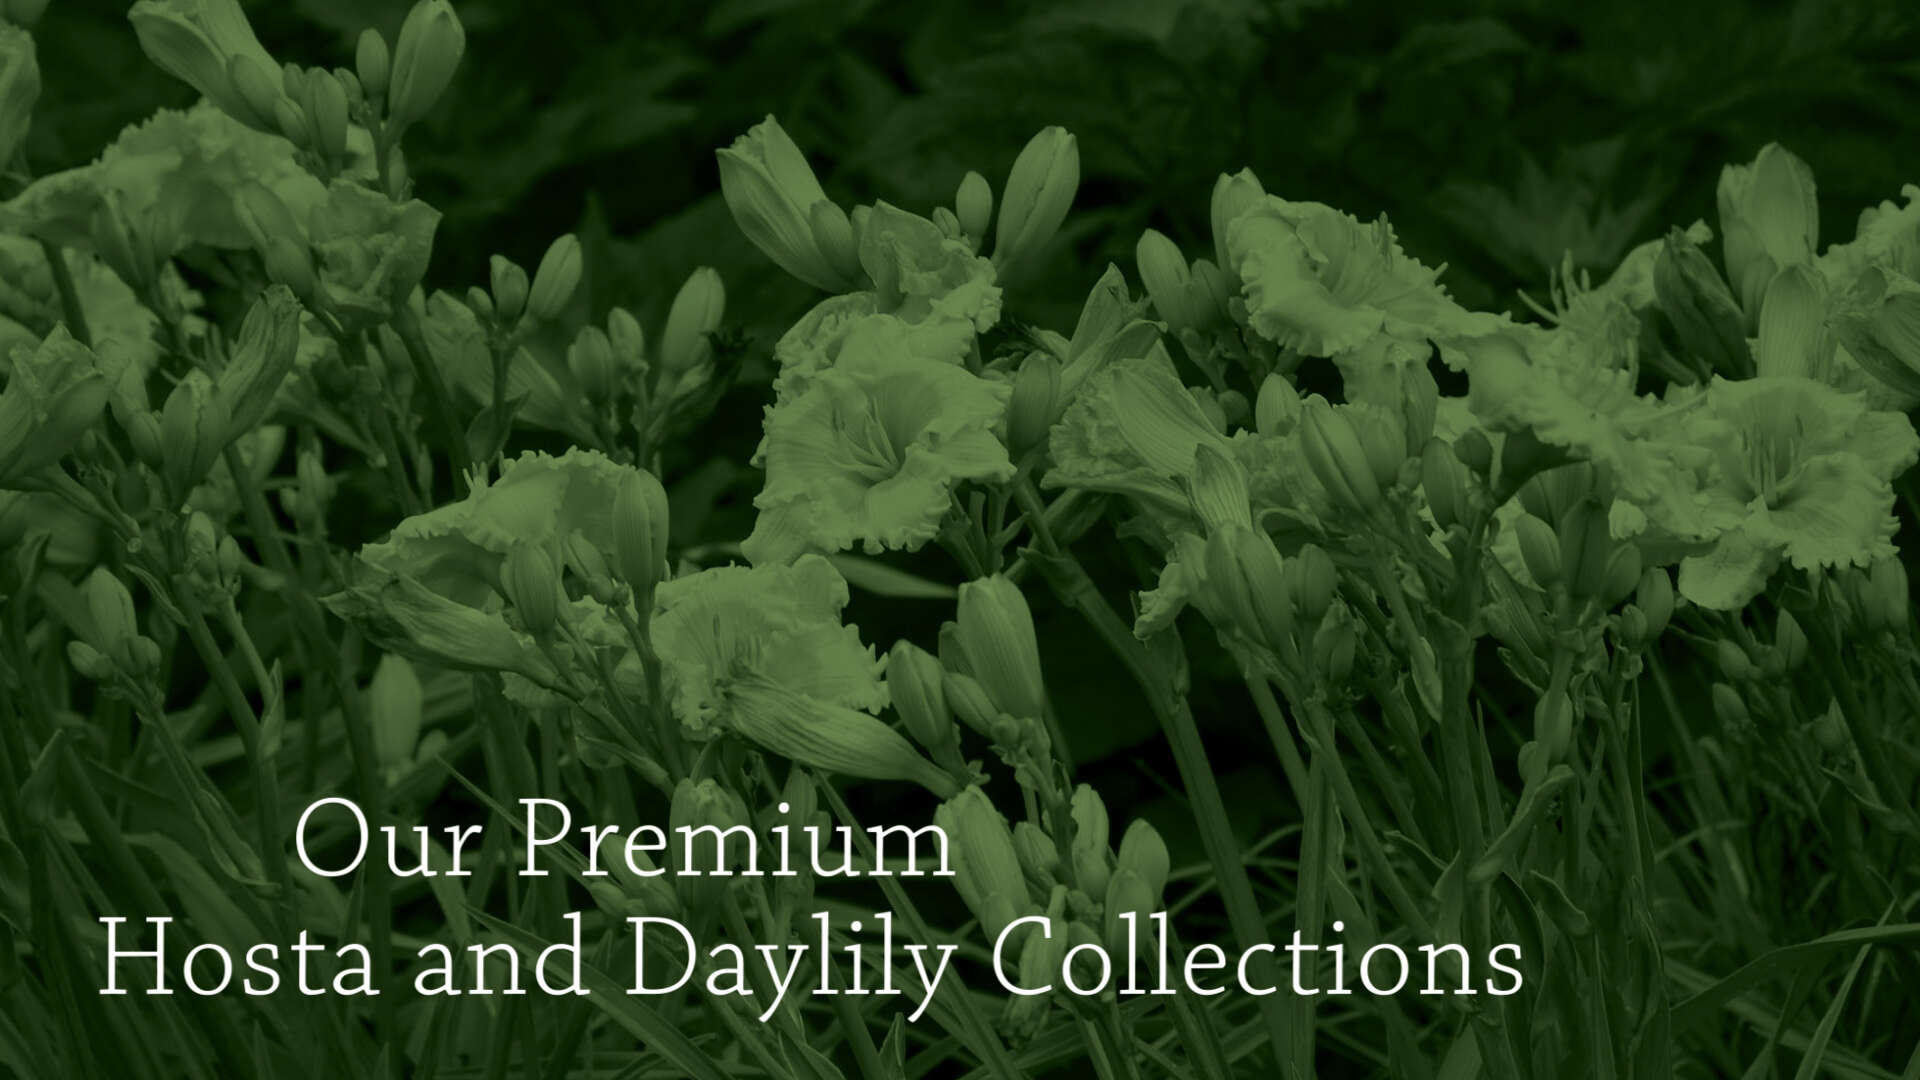 Premium Hosta and Daylily Programs